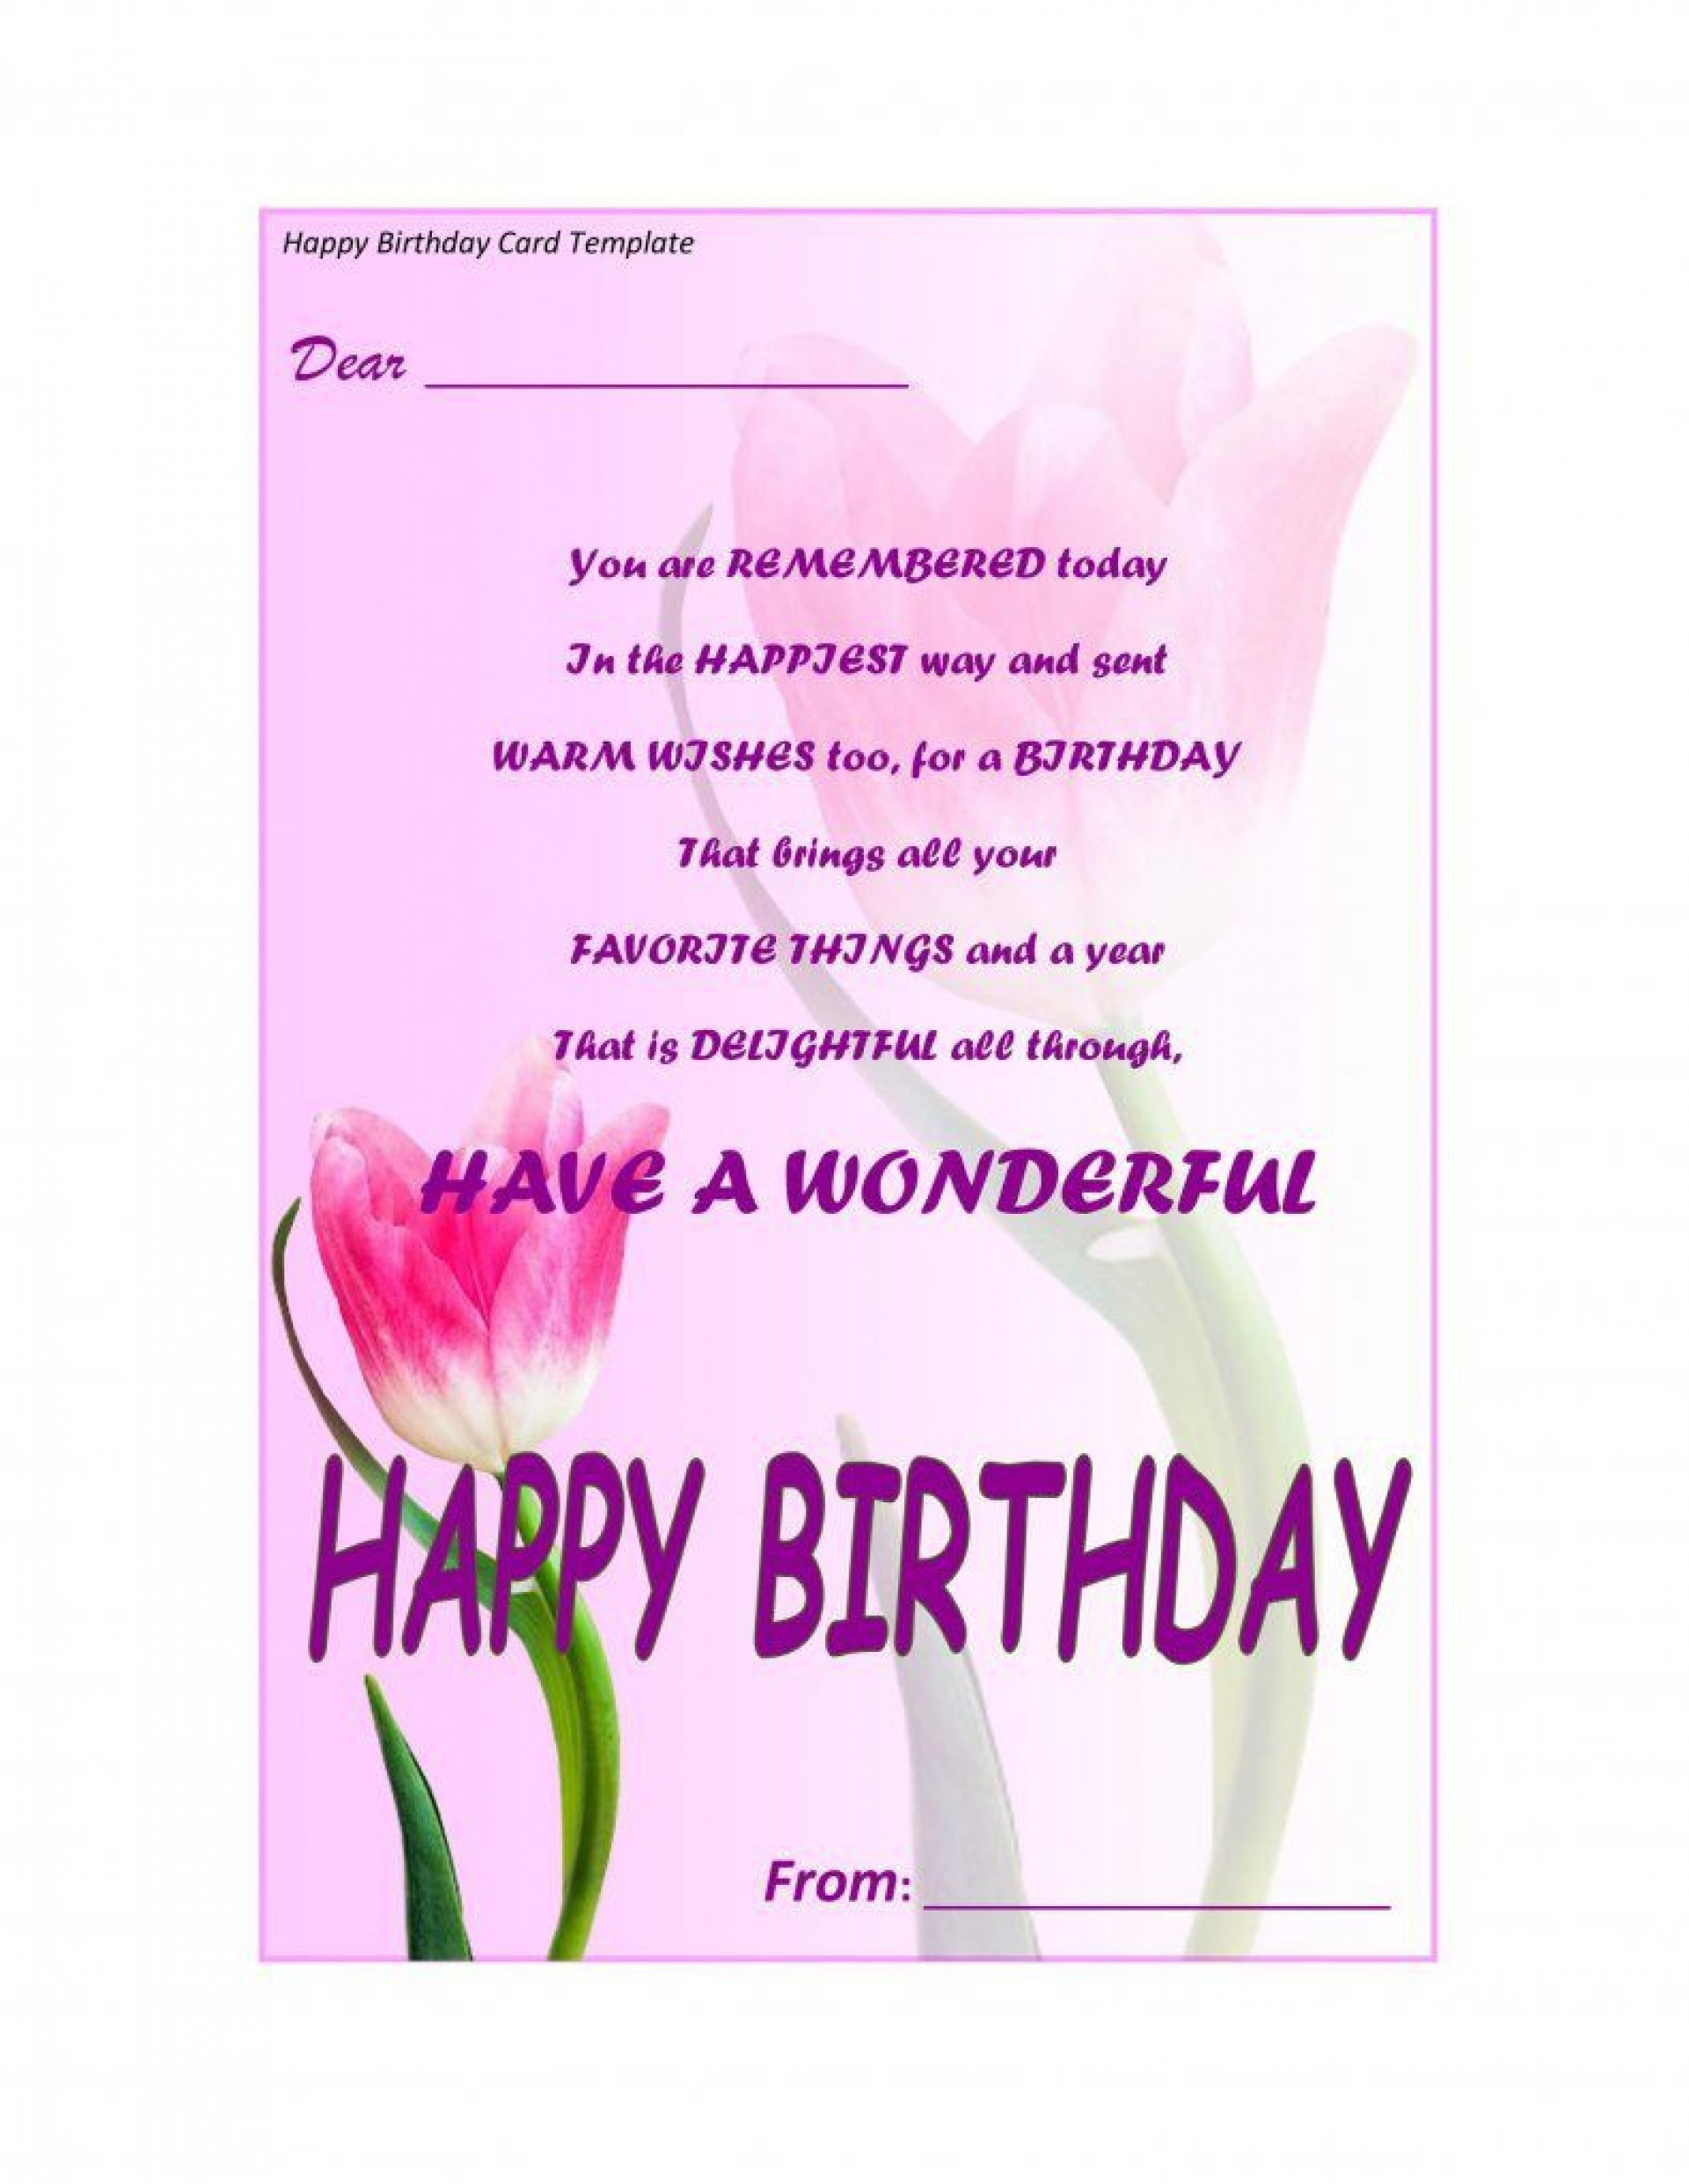 004 Awful Birthday Card Template For Microsoft Word High Def  Free Greeting Layout1920